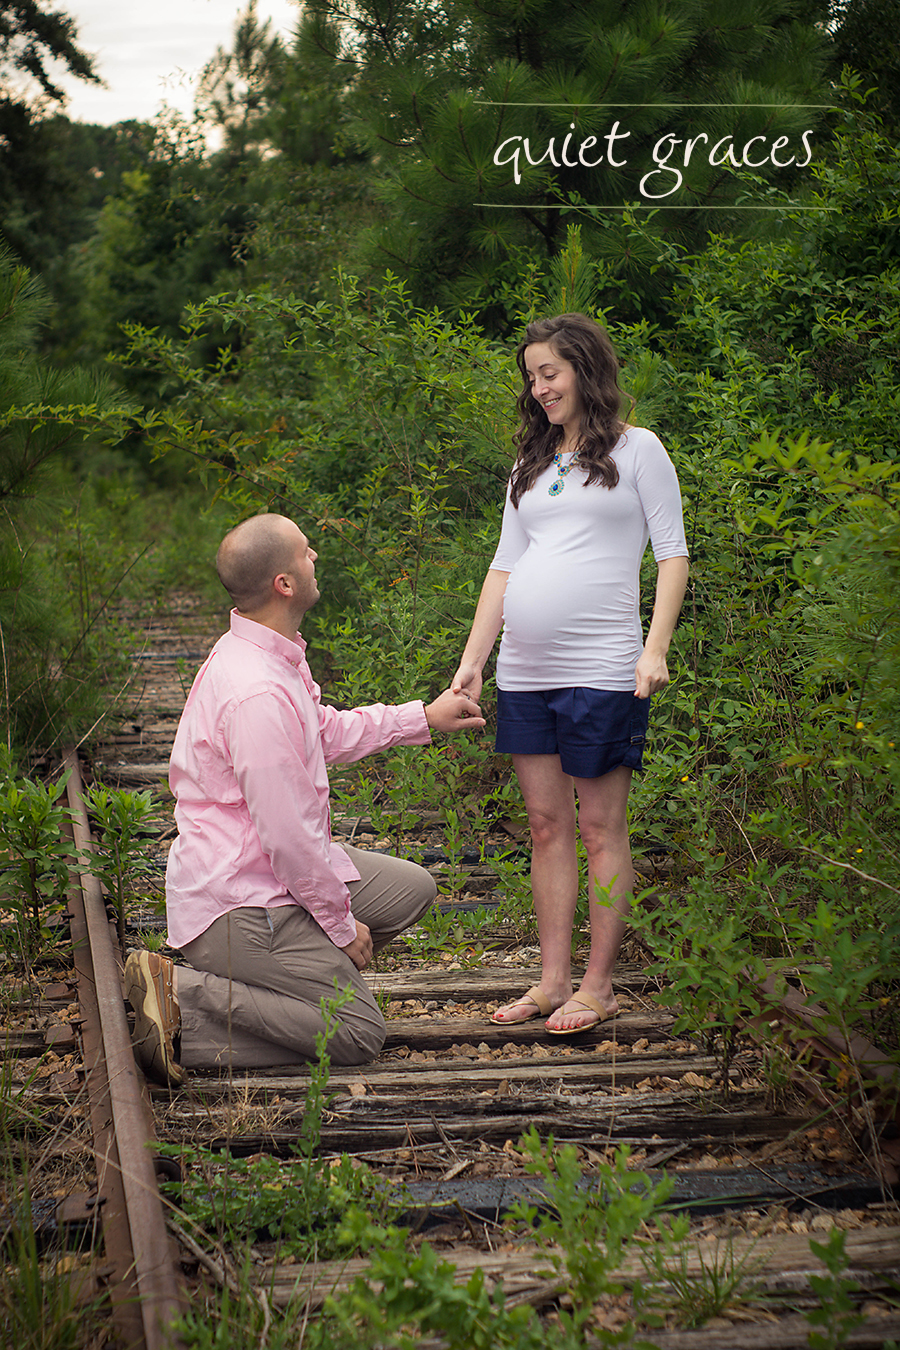 Greenville SC Beloved Maternity Photographer.  A Beloved Maternity Session focuses on creating an experience for the couple to reignite their love and prepare for birth.